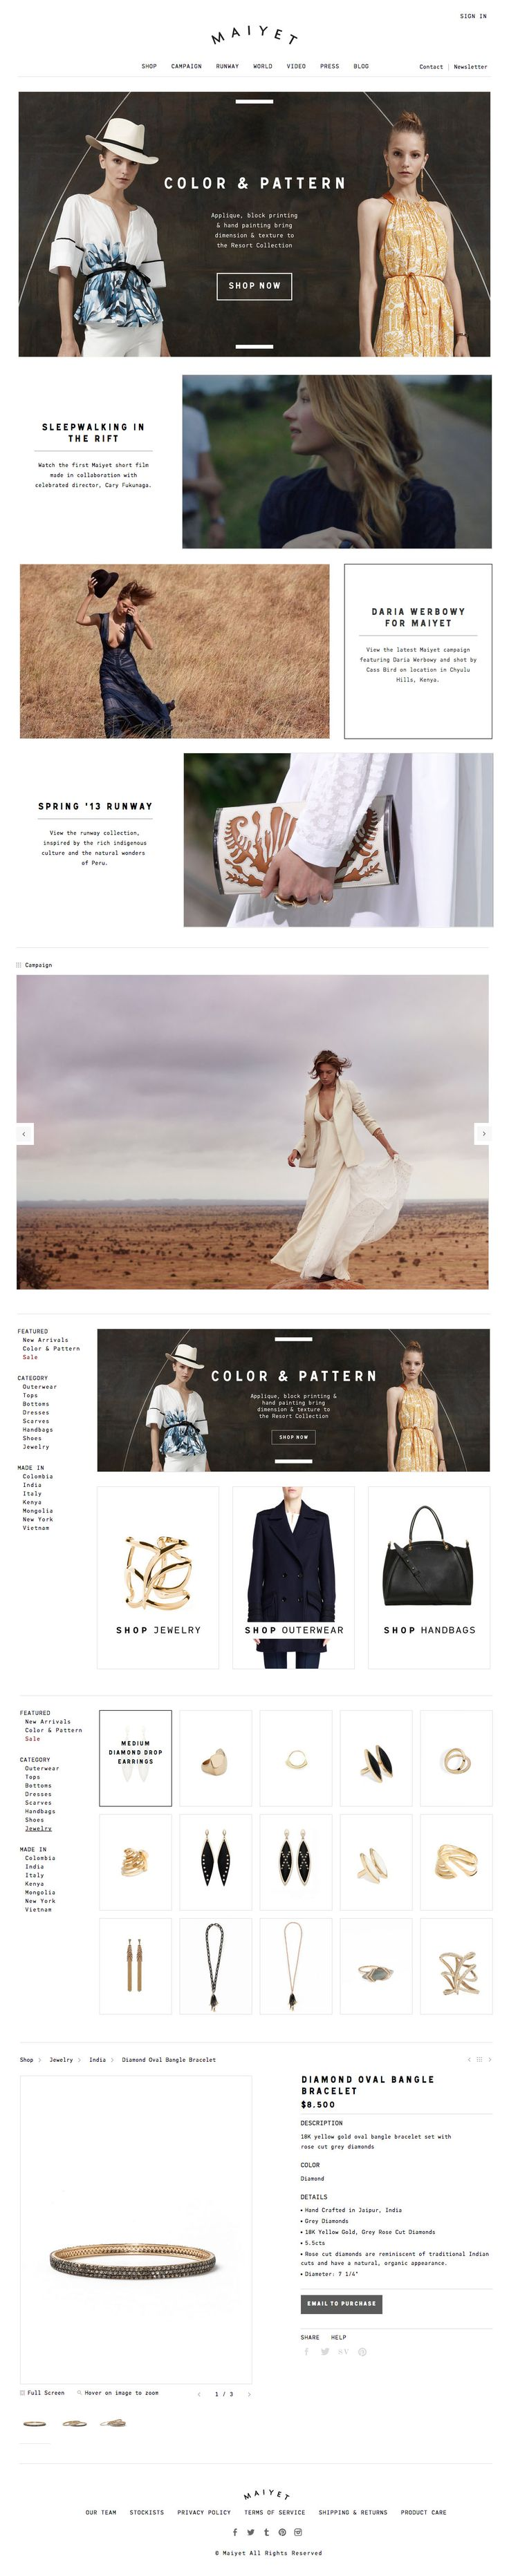 Fashion #ecommerce #website #design #web #webdesign